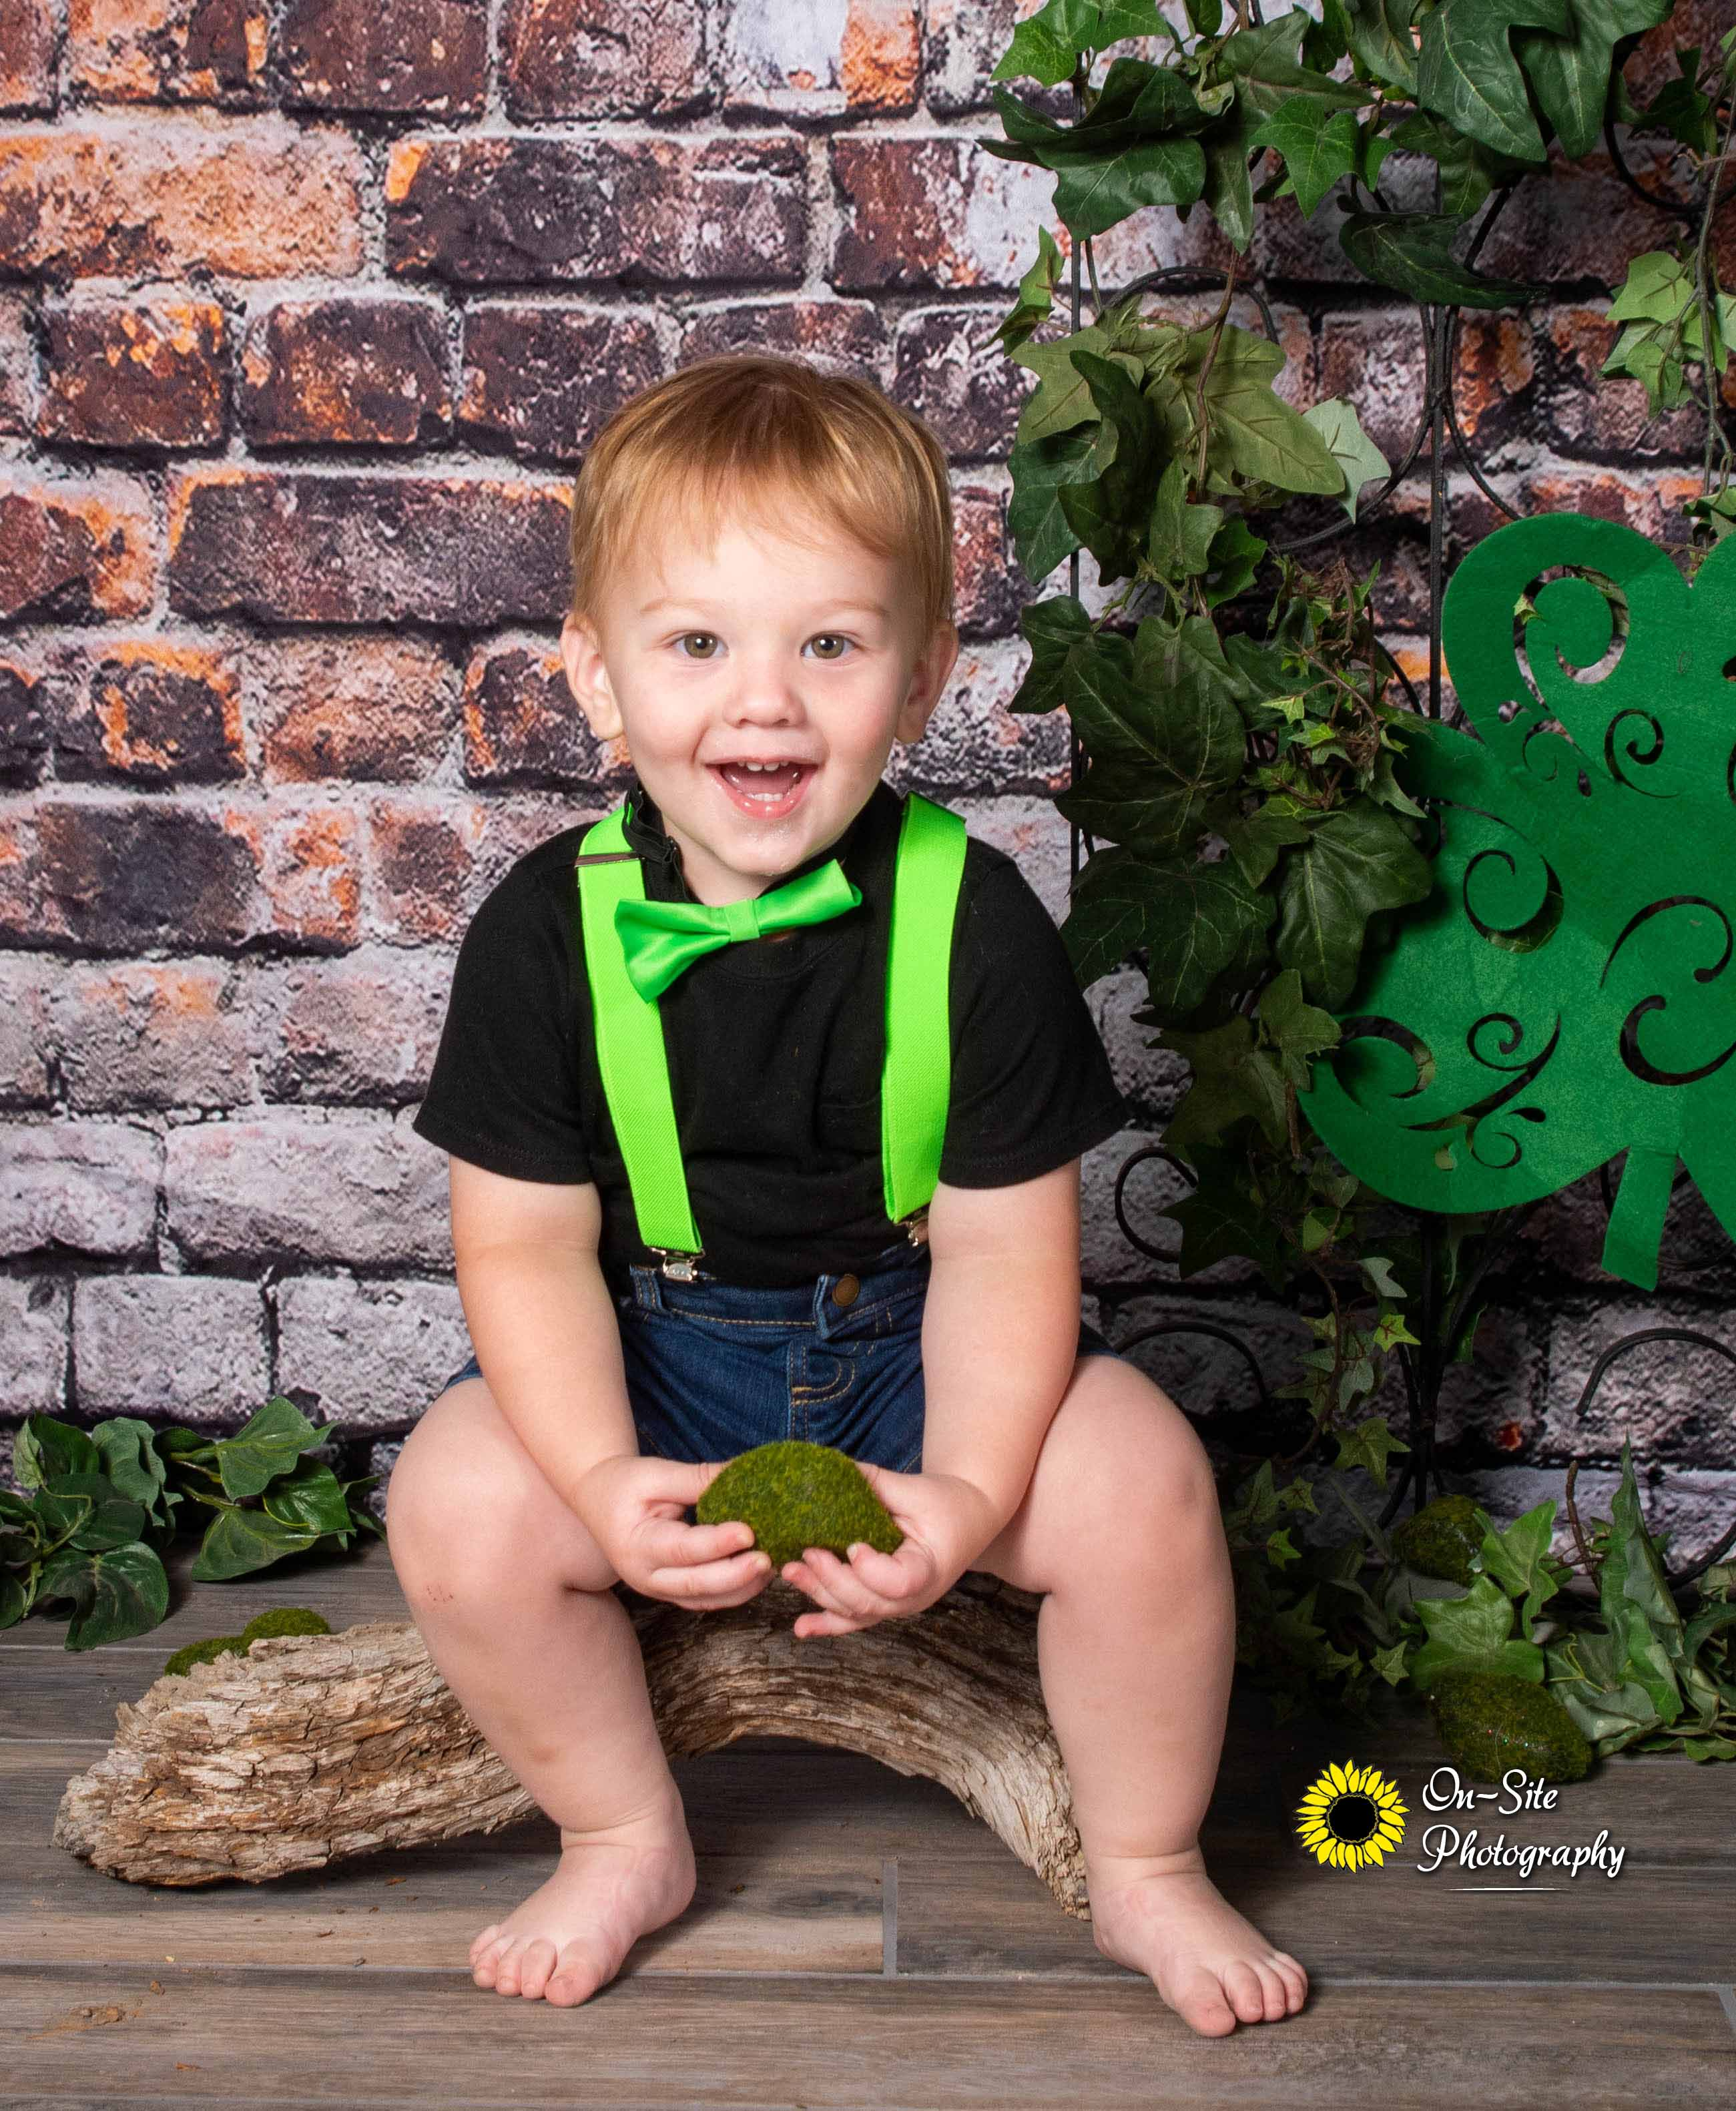 kids photoshoots for st patricks day, ch